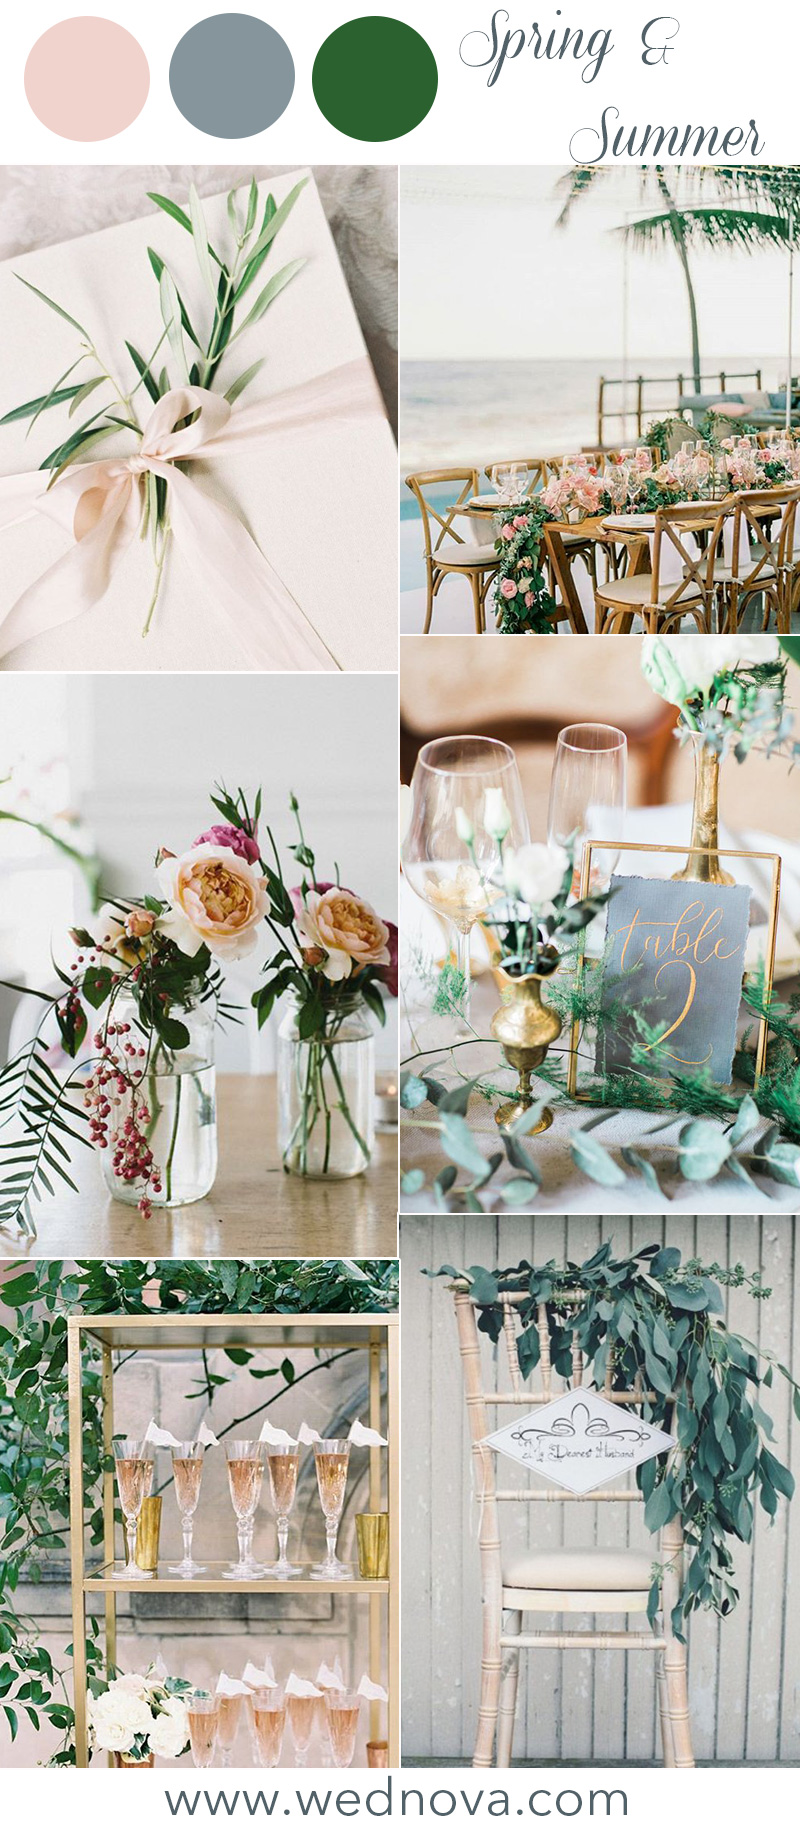 Wedding Color Palettes.12 Wedding Color Palettes That Are Perfect For Spring